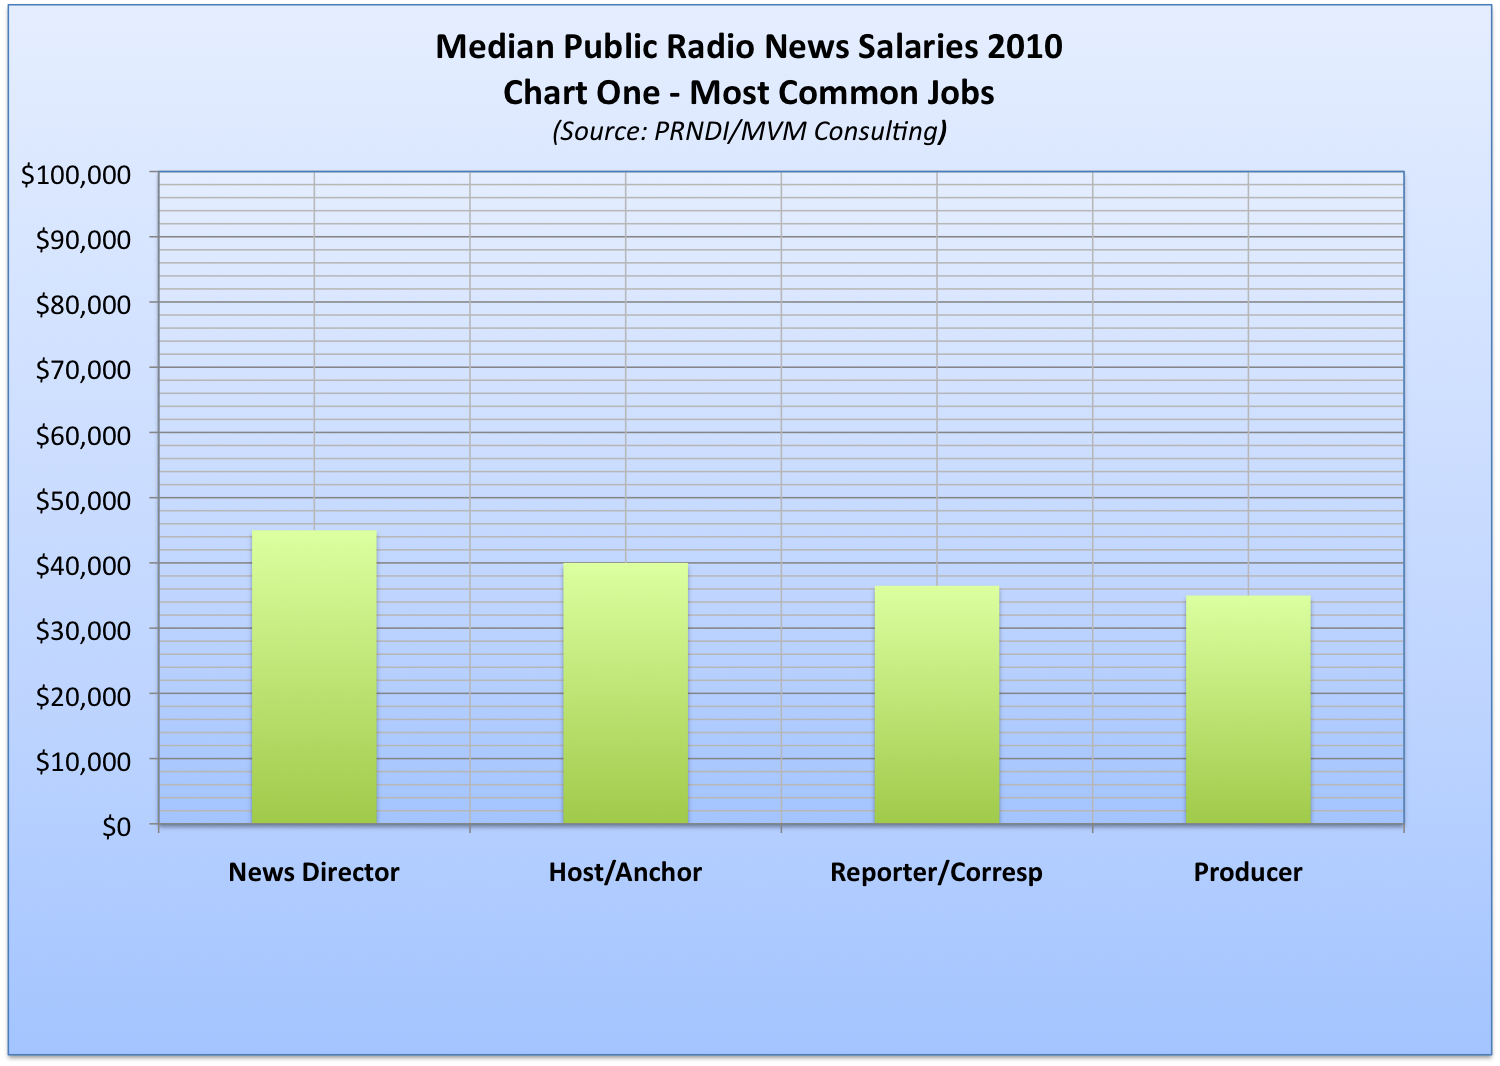 newsroom salaries local npr median public radio salaries